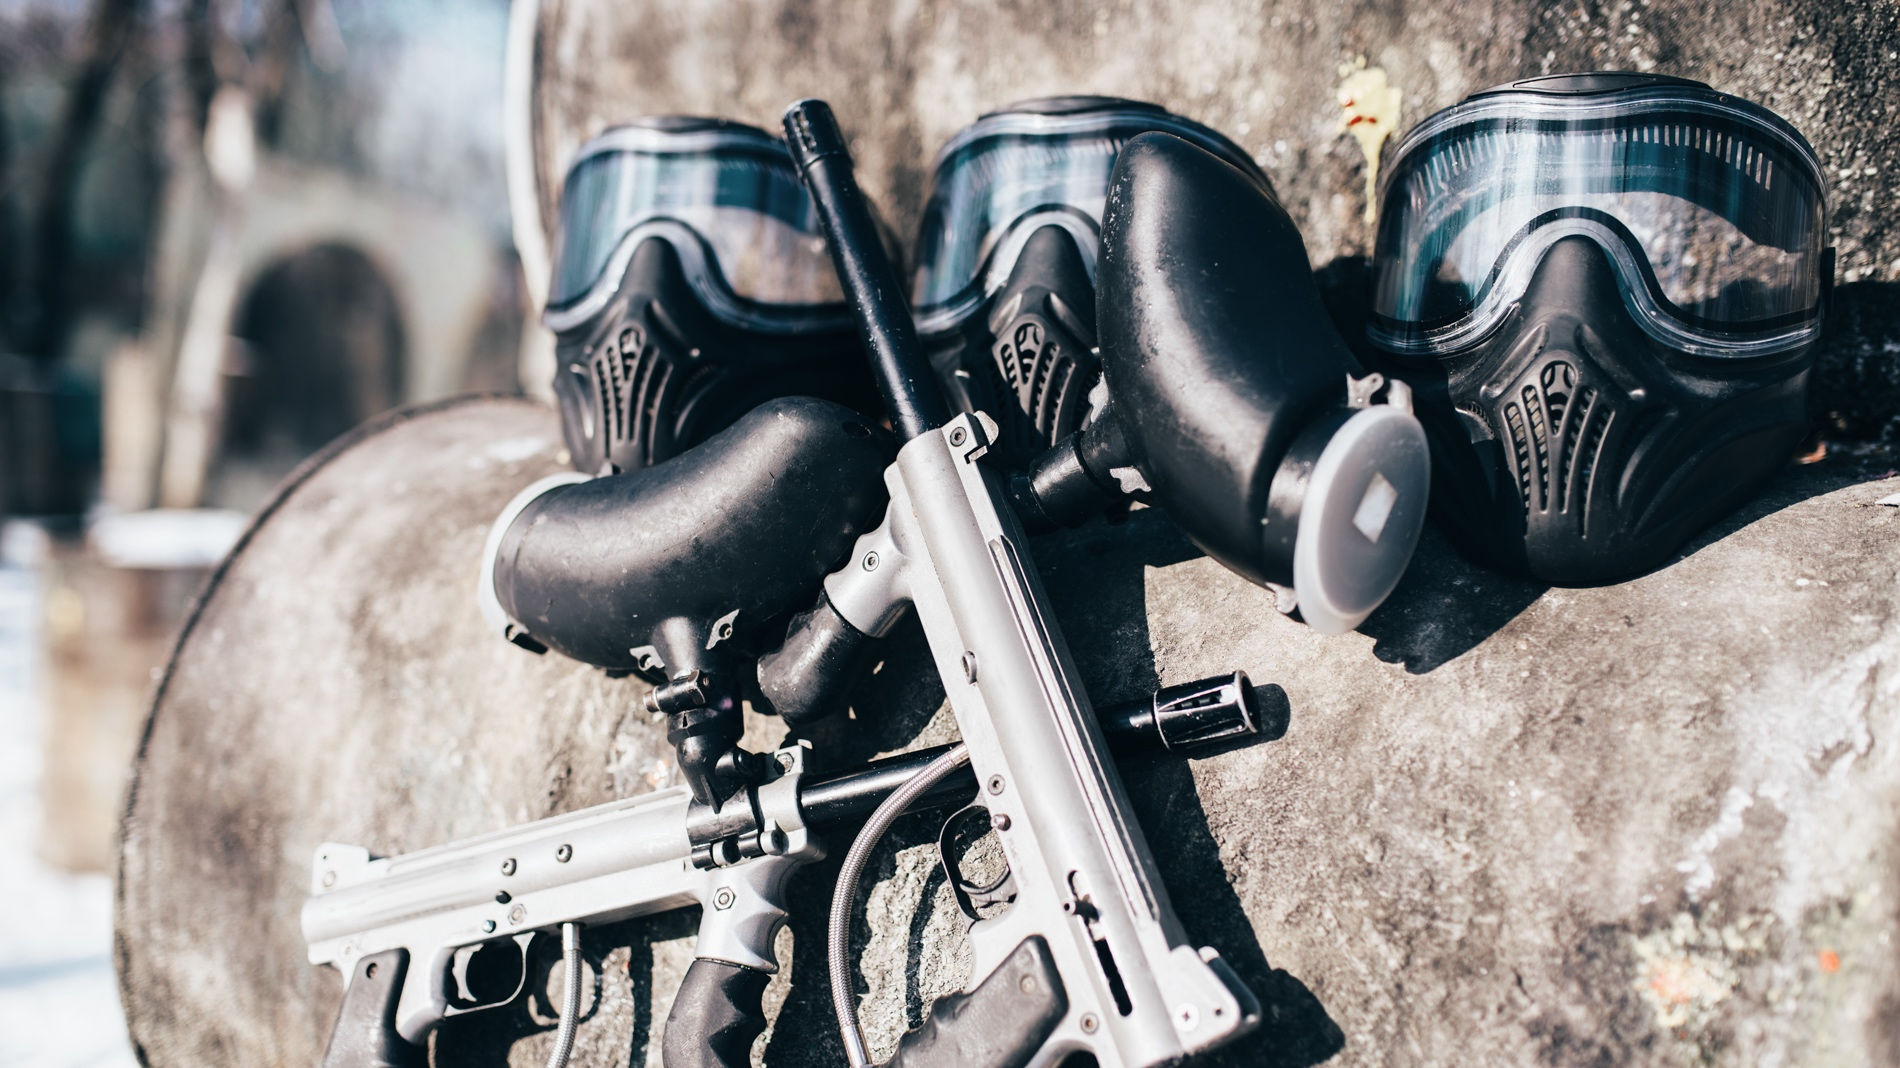 paintball-masks-with-glasses-and-marker-guns-P5TMWDZ.jpg